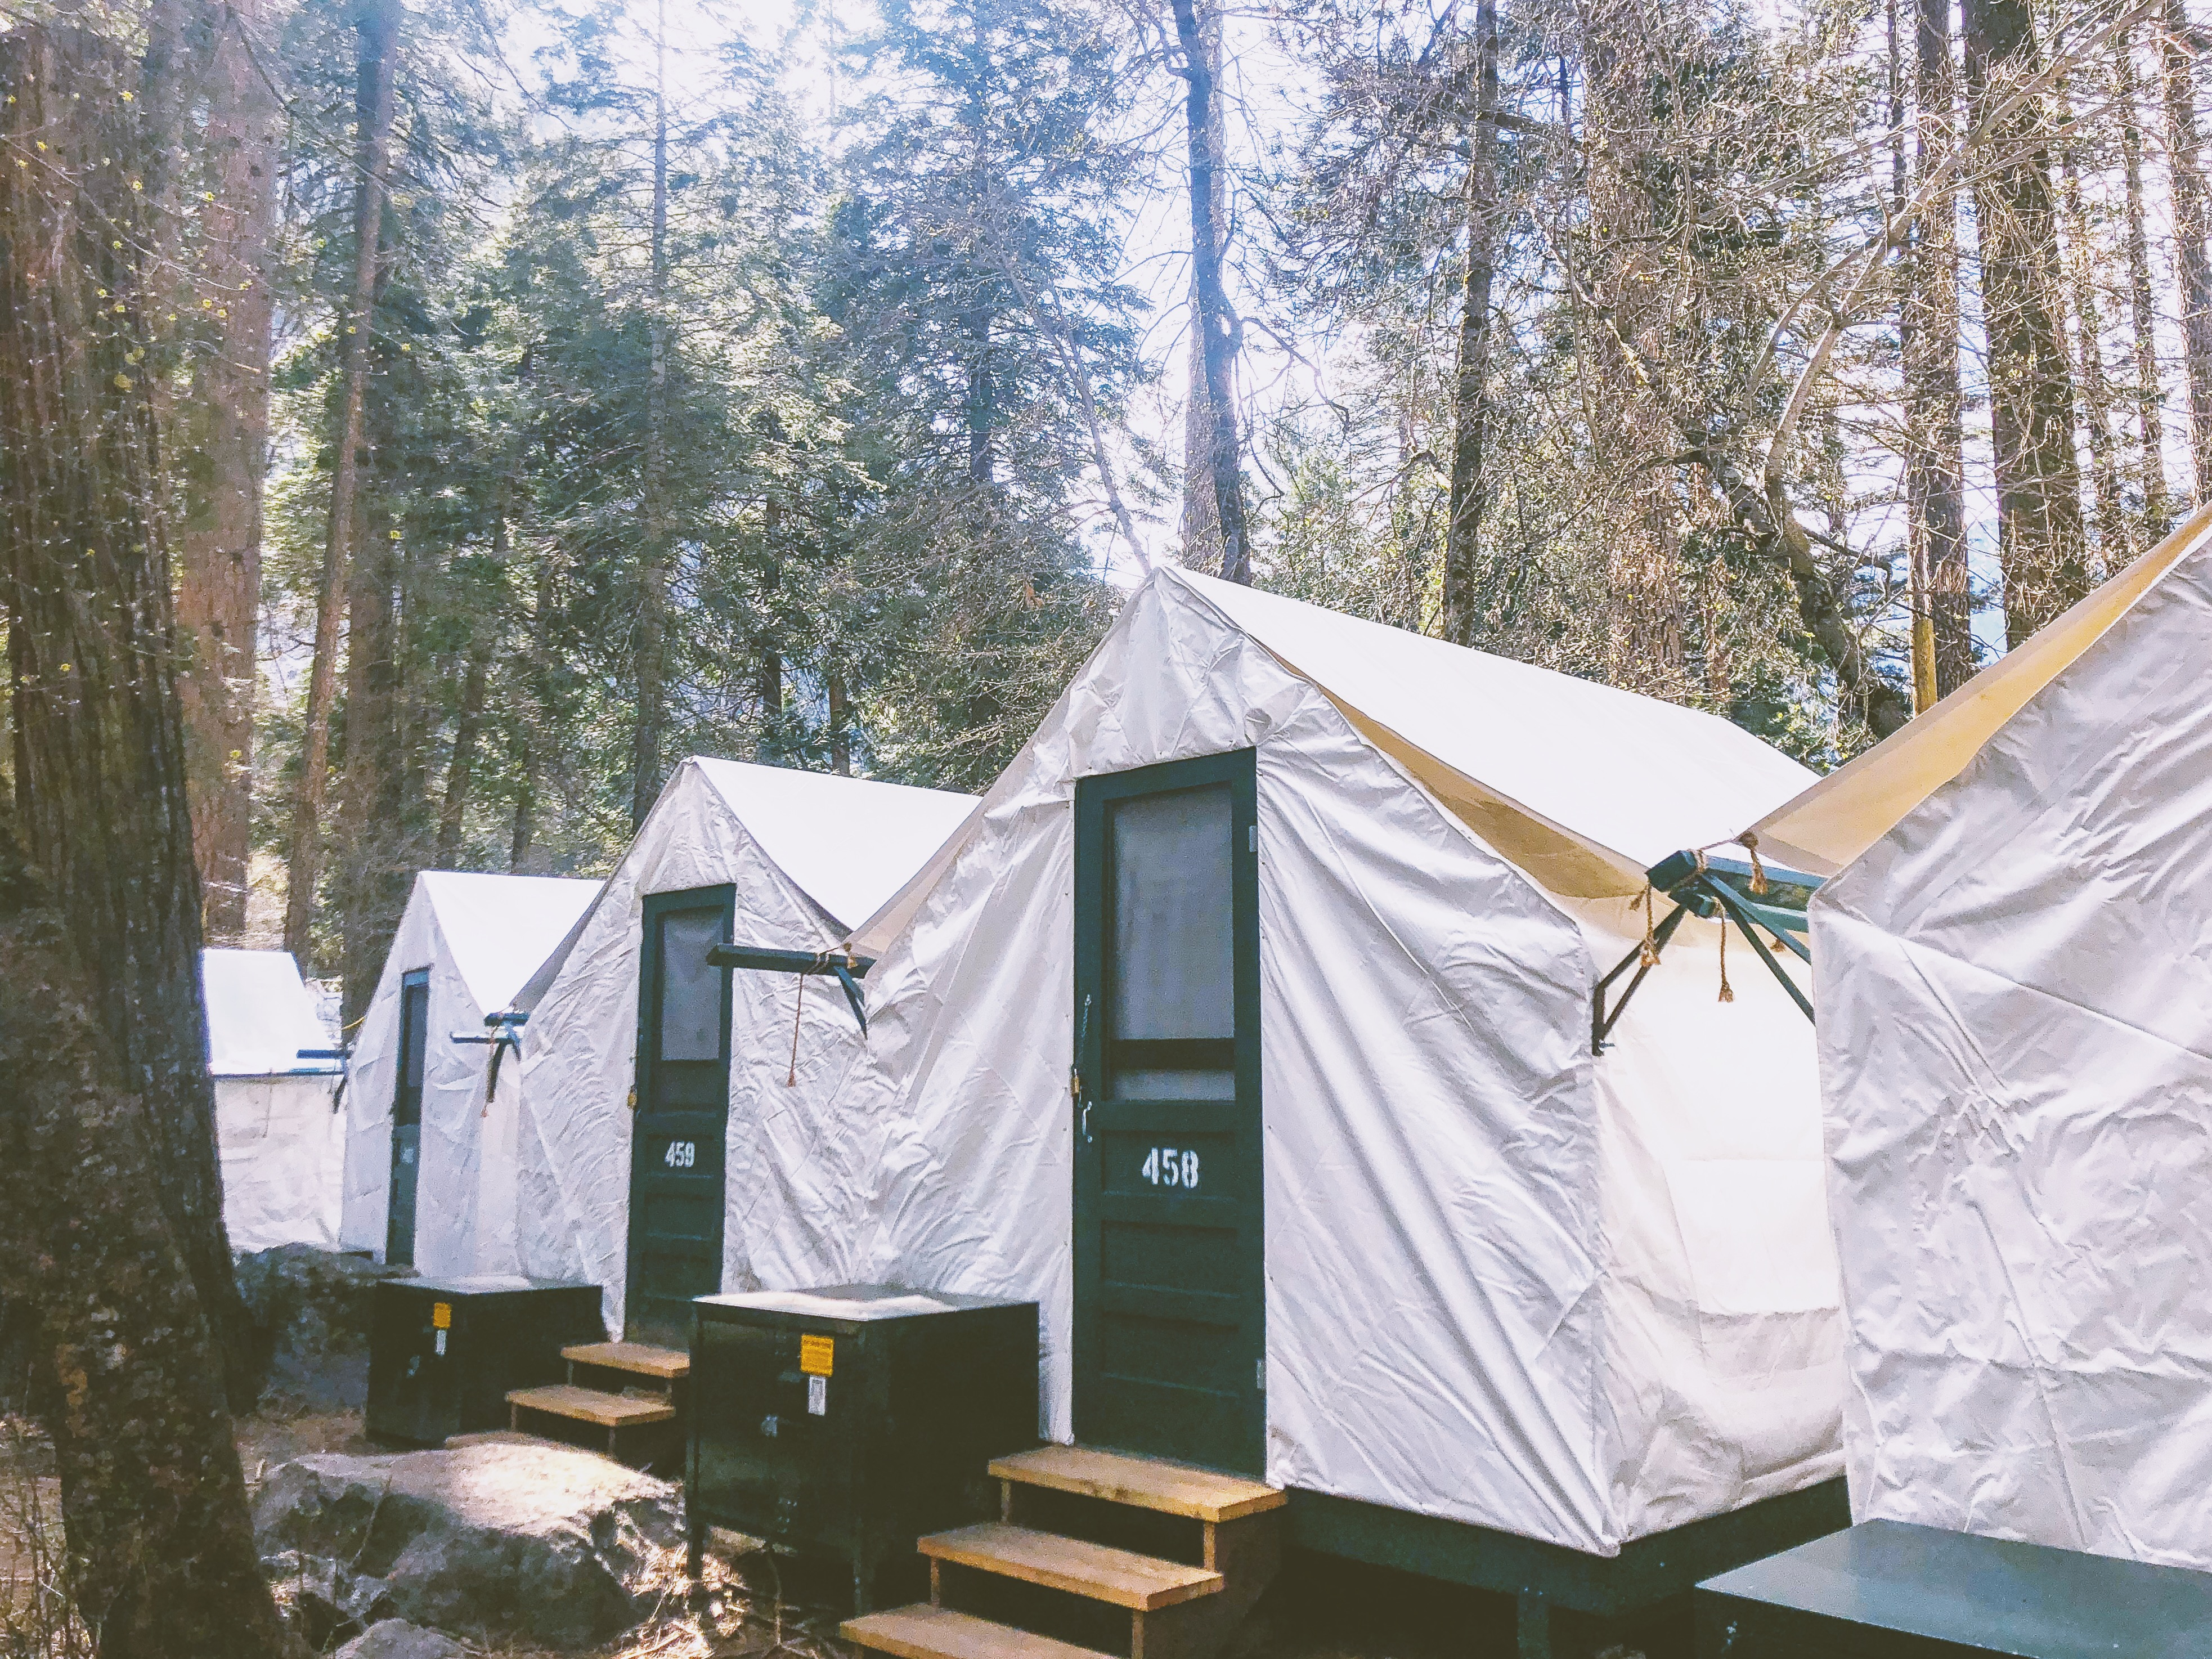 What to Pack for Half Dome Village in Yosemite National Park (u0026 What to Expect Once There) & What to Pack for Half Dome Village in Yosemite - The Weekend Jetsetter